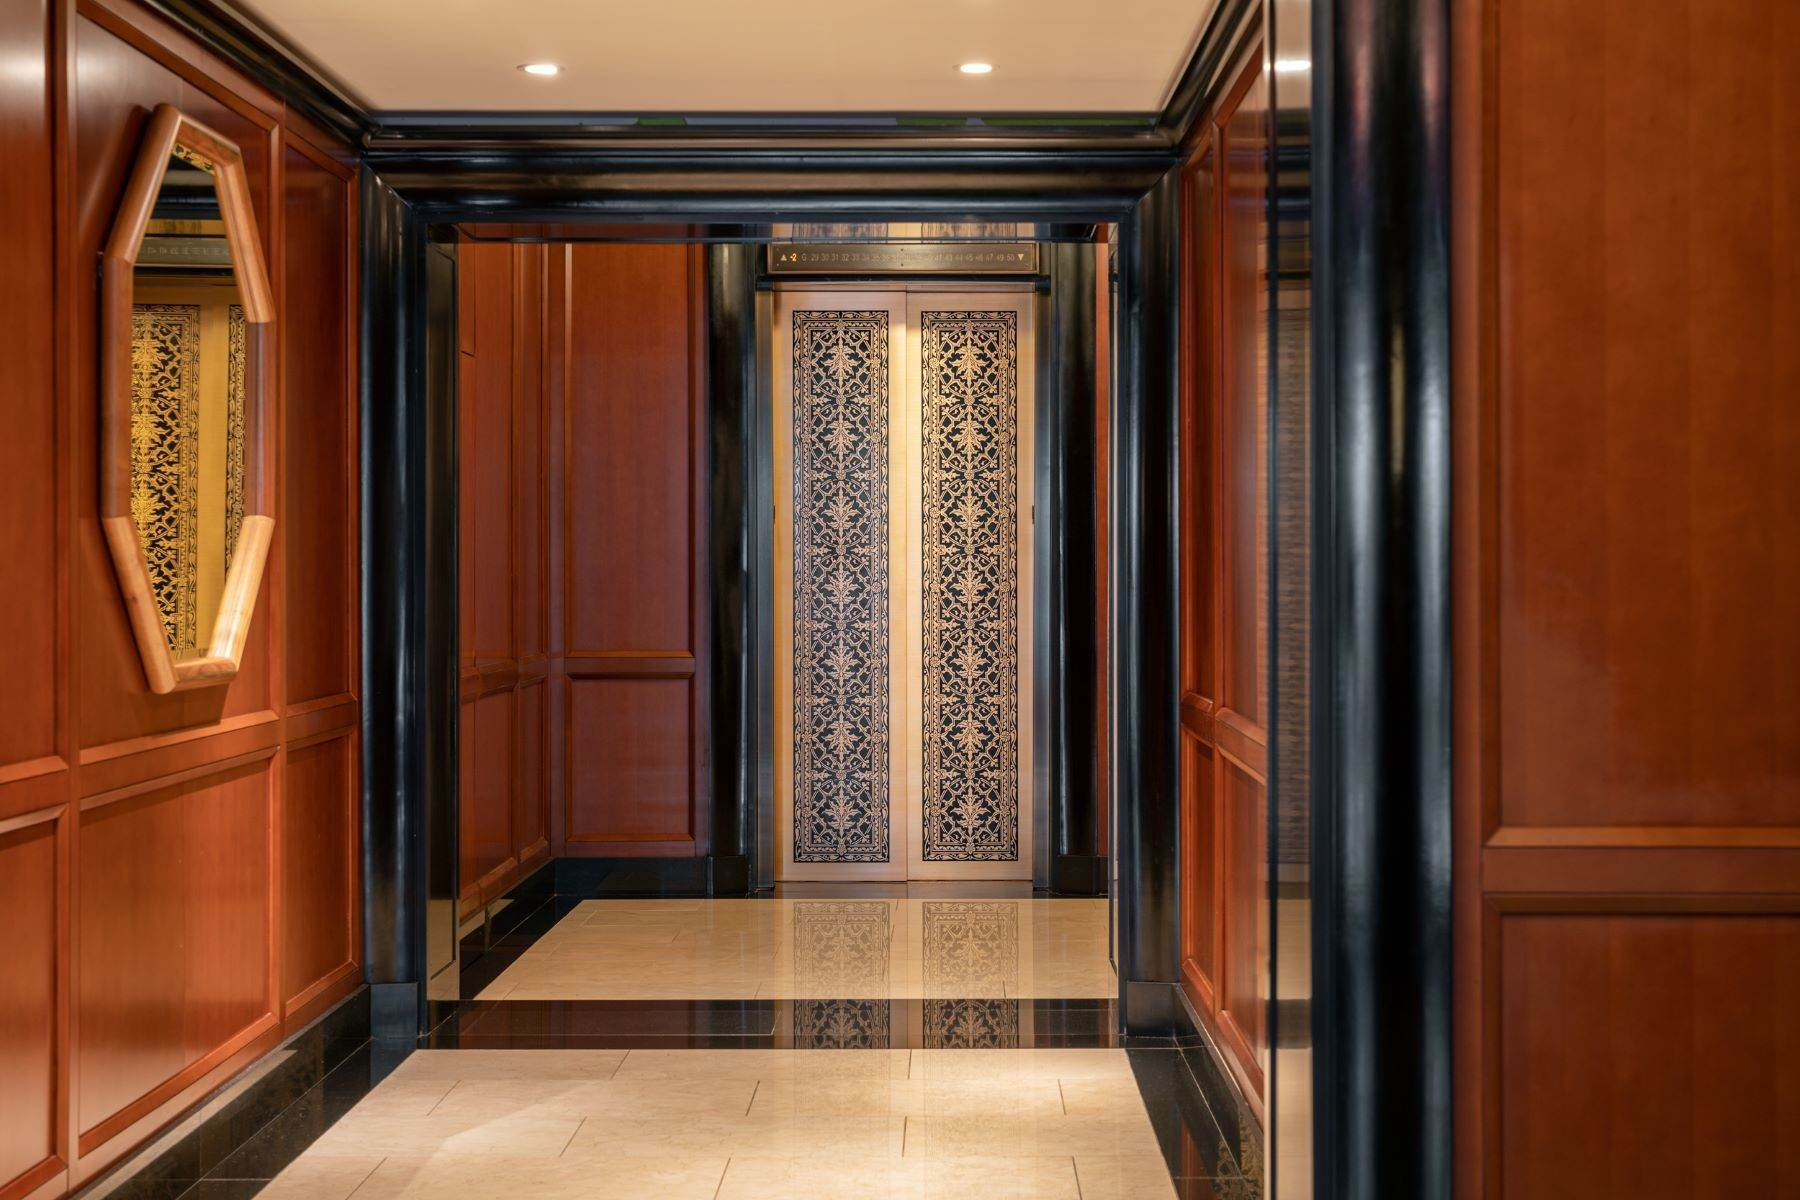 10. Condominiums for Sale at The Pinnacle Penthouse 2 Park Place, Pinnacle Penthouse, New York, New York 10007 United States